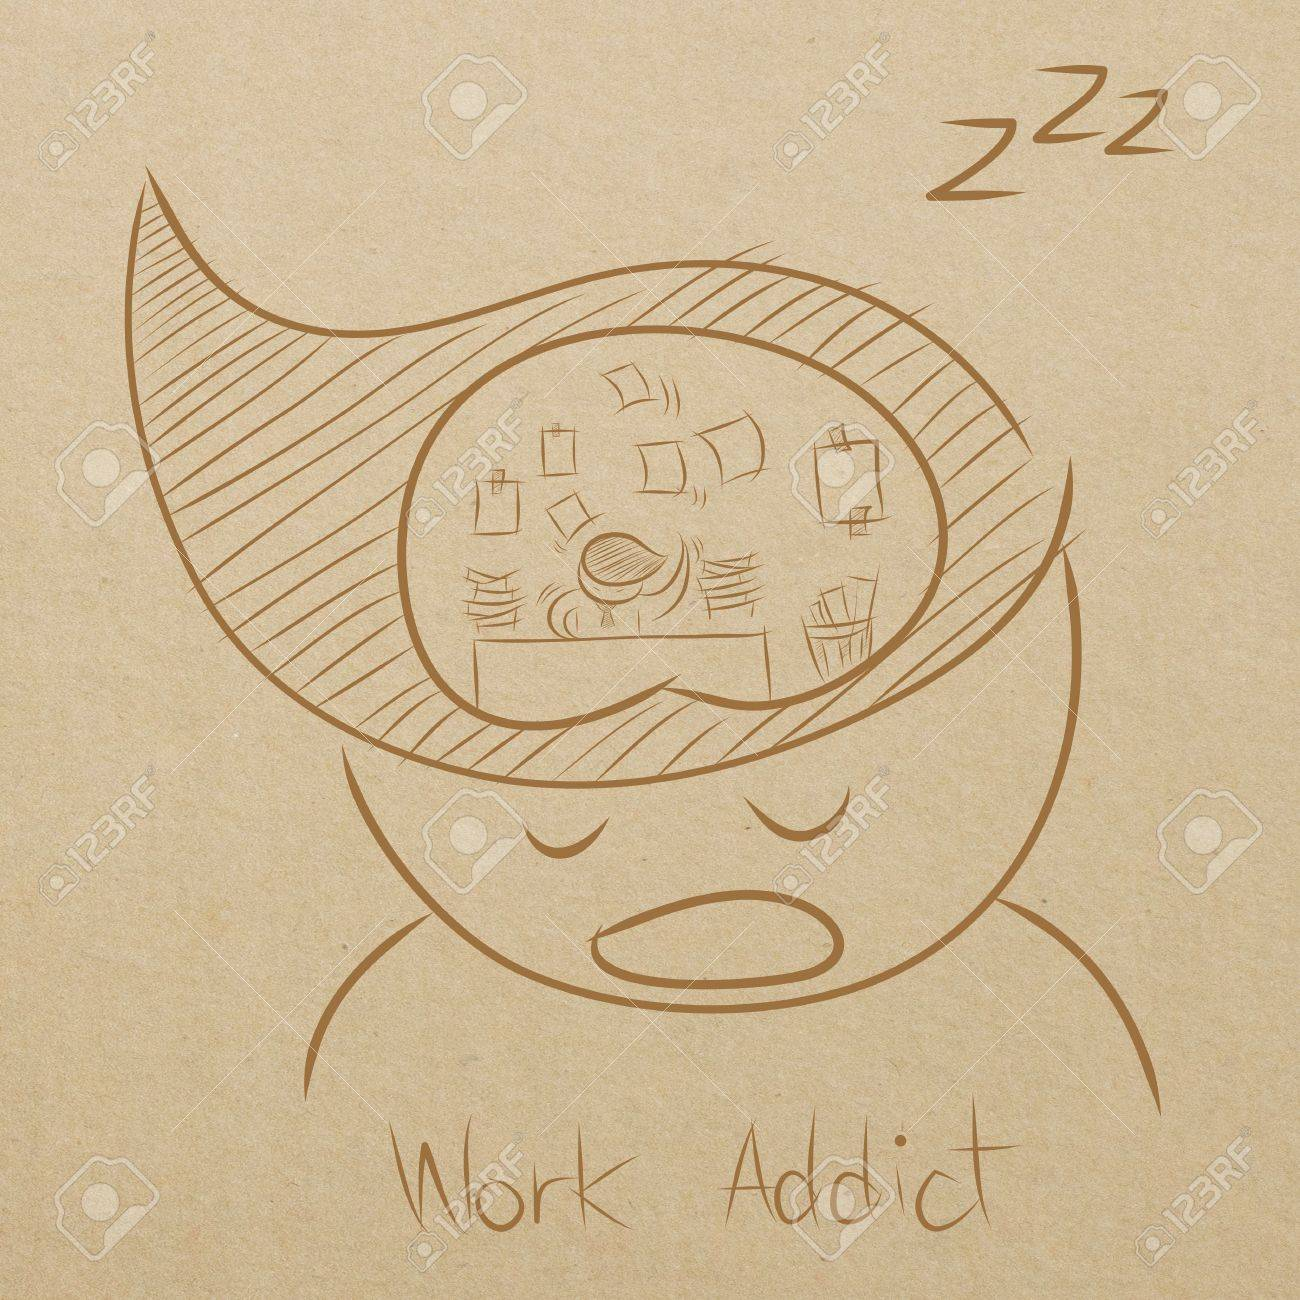 1300x1300 Cartoon Drawing Of A Man Dreaming About Working While Sleeping